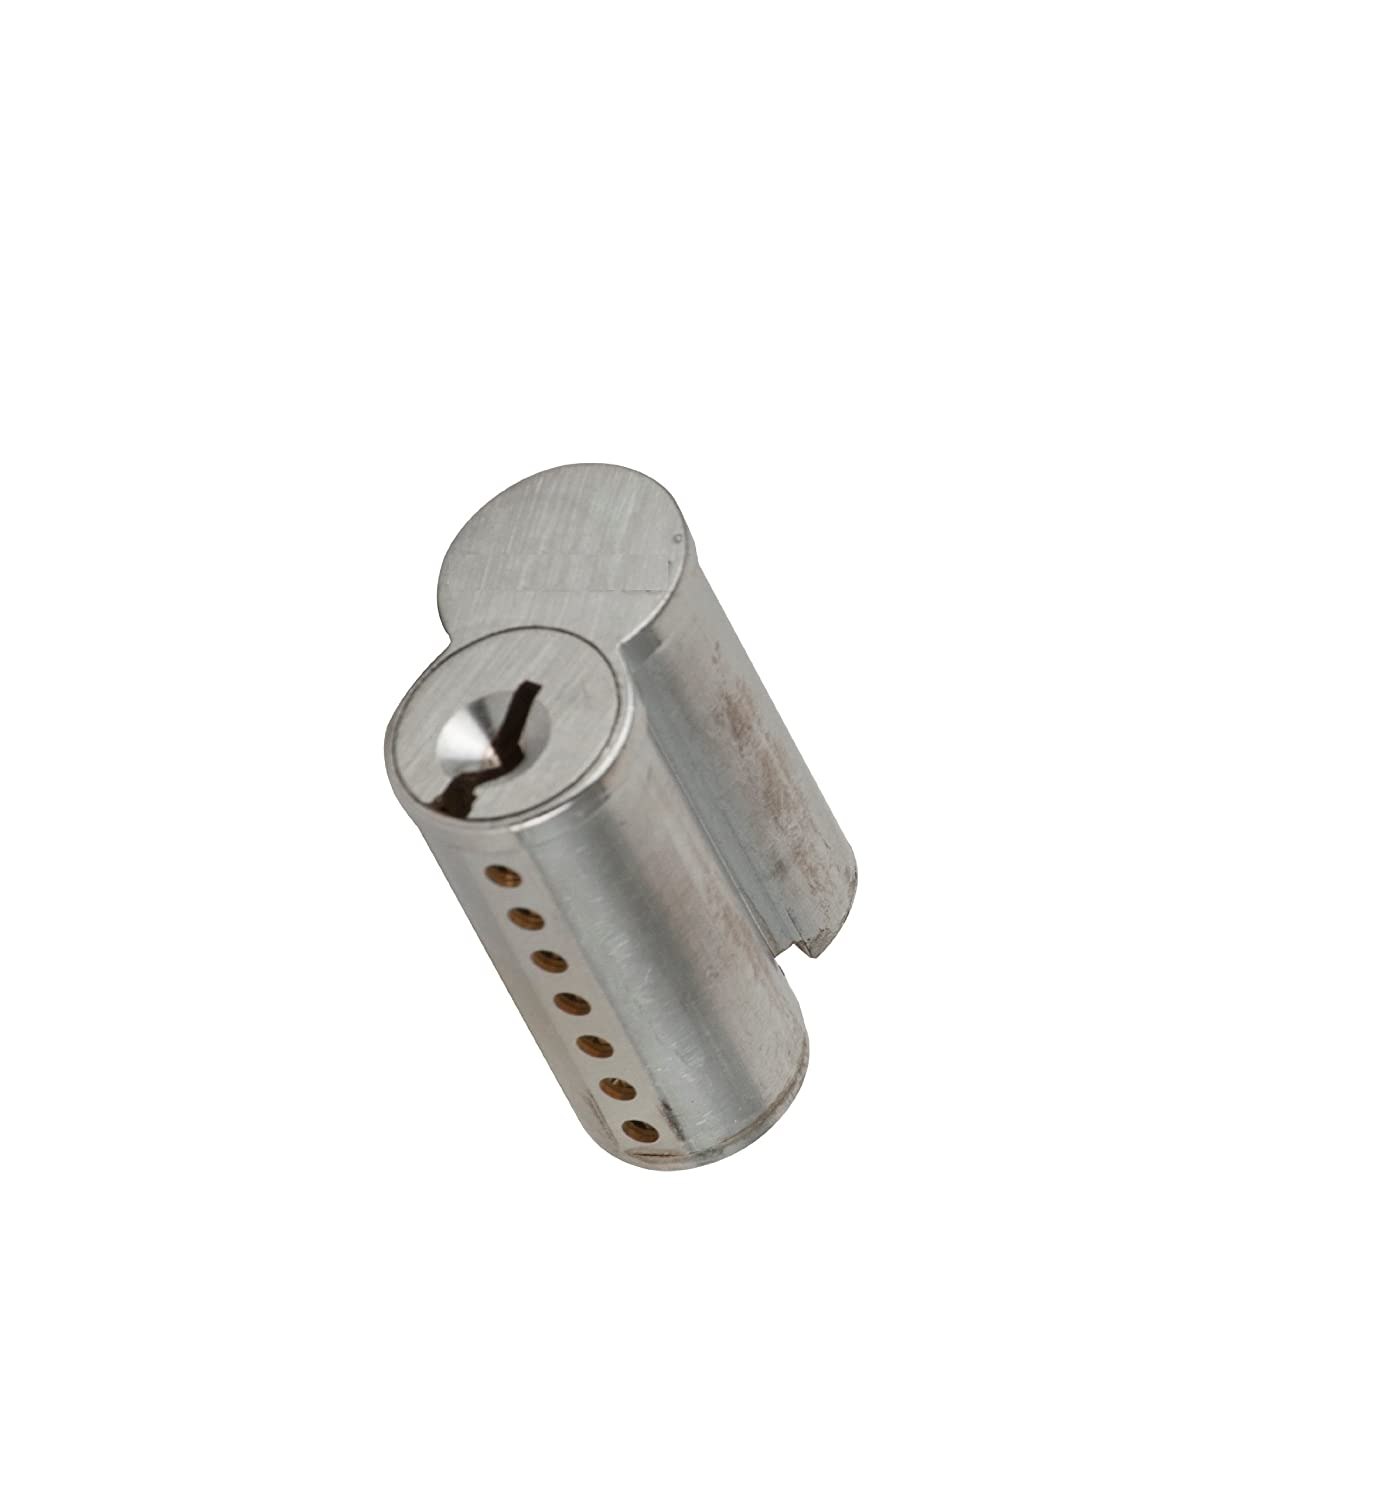 Pack of 20 Schlage 80-033 C Small Format Interchangeable Cylinder Core for Schlage Locksets C Keyway